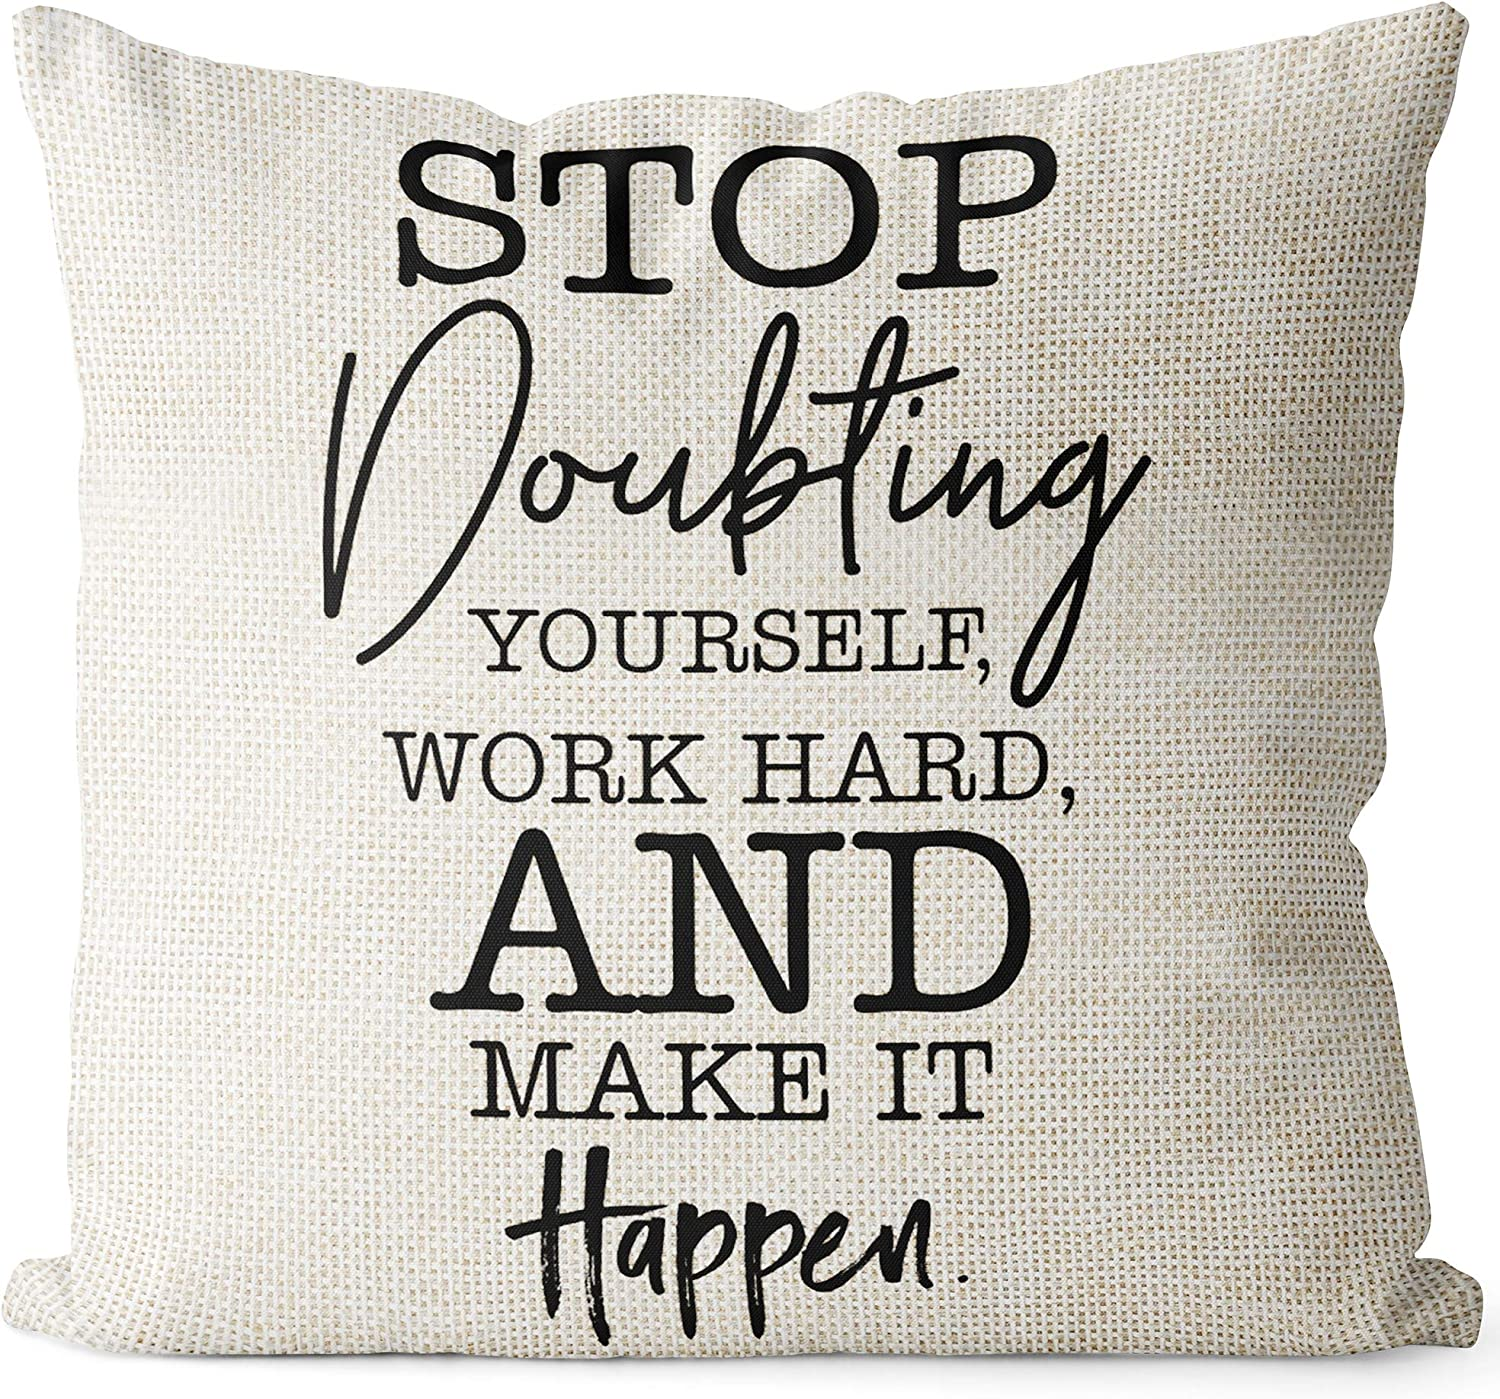 Amazon Com Bedsum Linen Throw Pillow Cover Stop Doubting Yourself Work Hard And Make It Happen For Living Room Sofa Couch Square Decorative Bed Pillow Case 18 18 Inches Home Kitchen